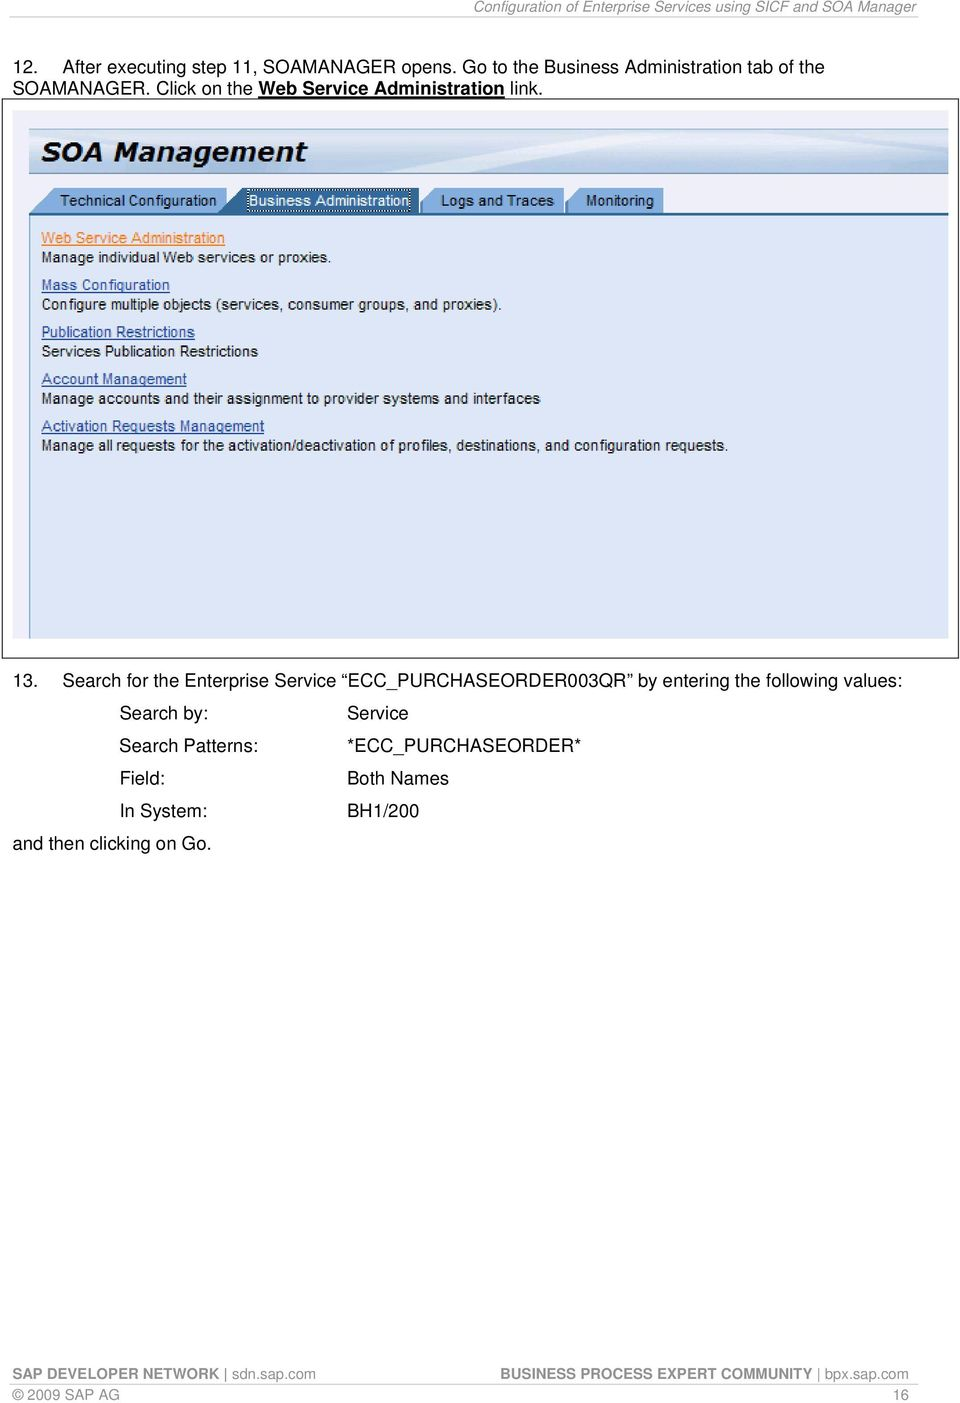 Configuration of Enterprise Services using SICF and SOA Manager - PDF